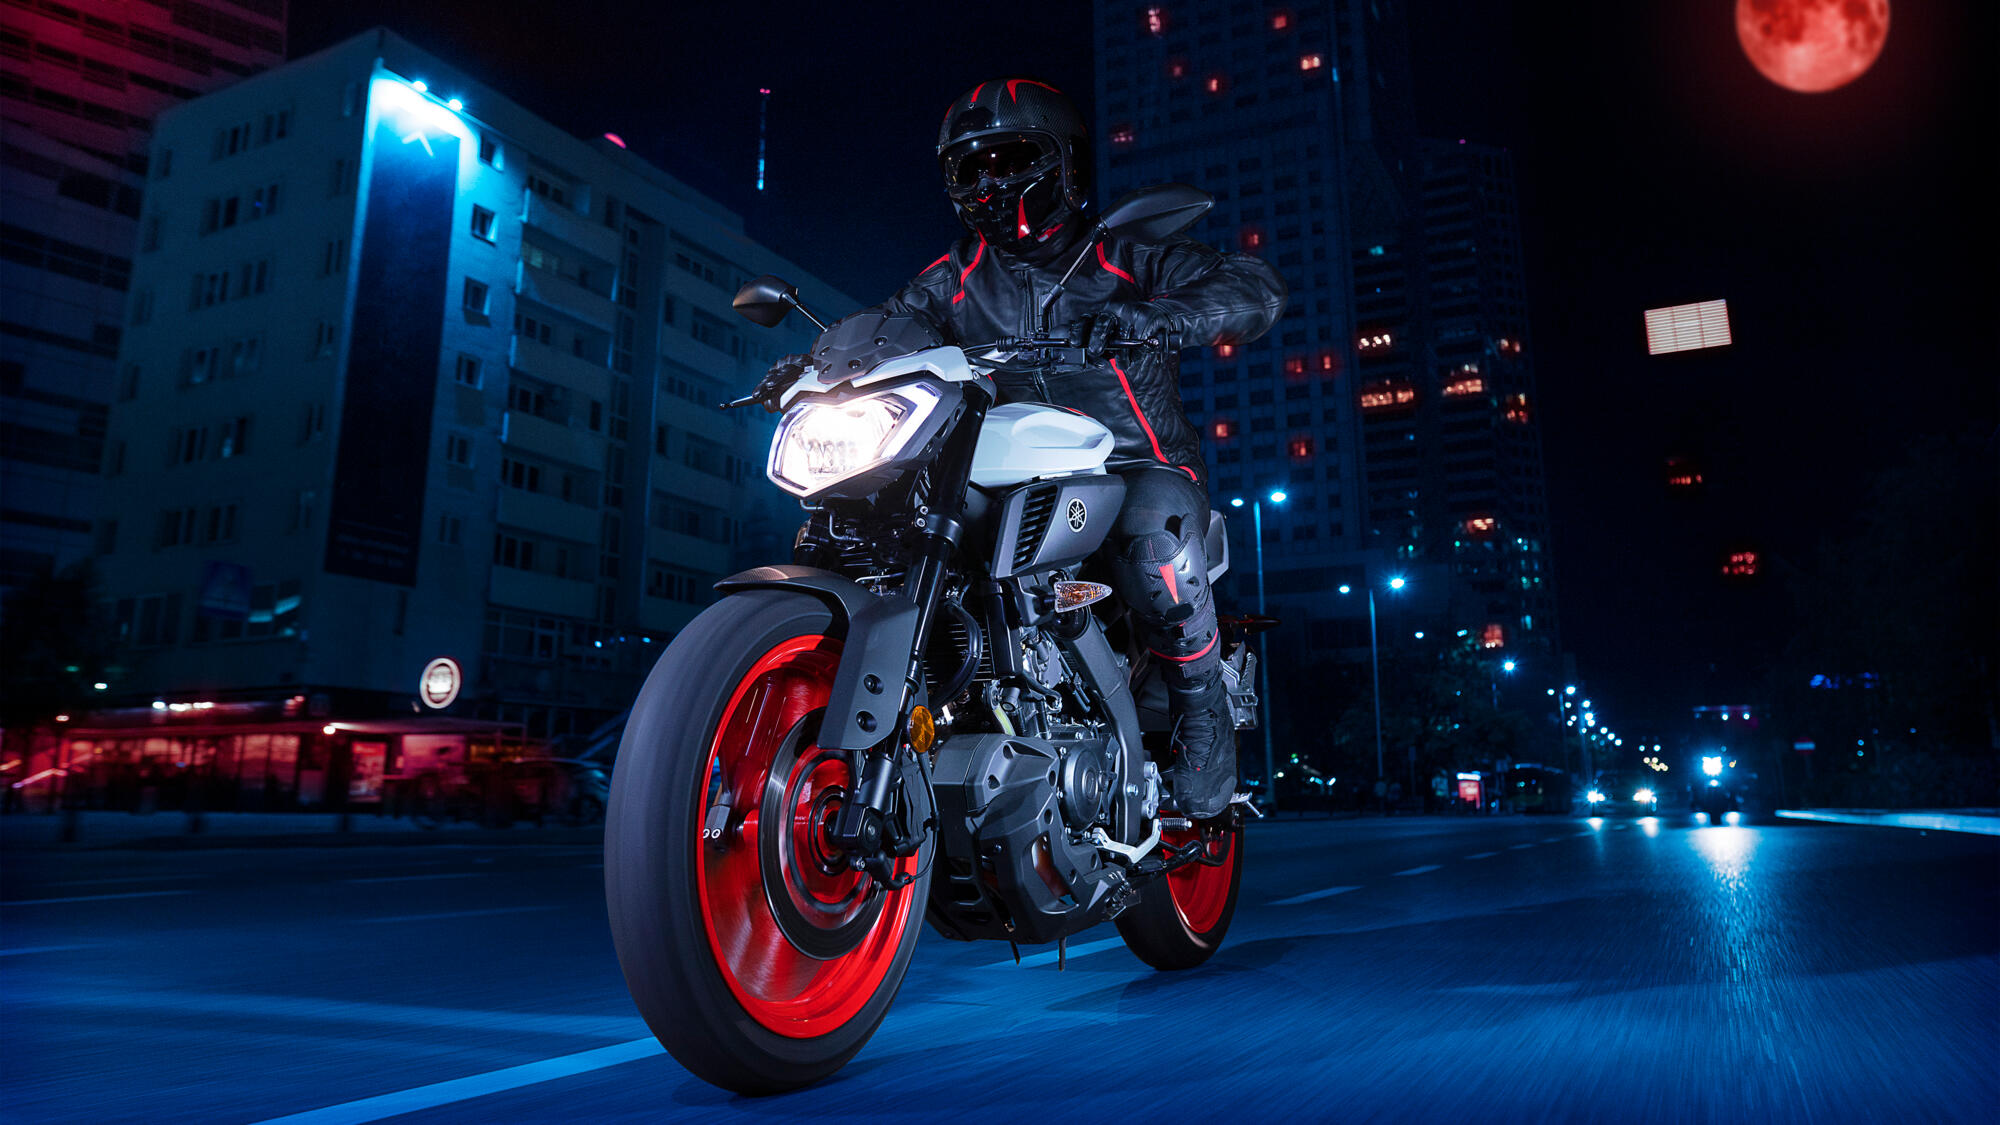 Mt 125 Motorcycles Yamaha Motor 50cc Pocket Bike Wiring Diagram Yamahas Hyper Naked Models Have Totally Shaken Up The World Of Motorcycling With Their Radical Style Thrilling Torque And Ultra Cool Image